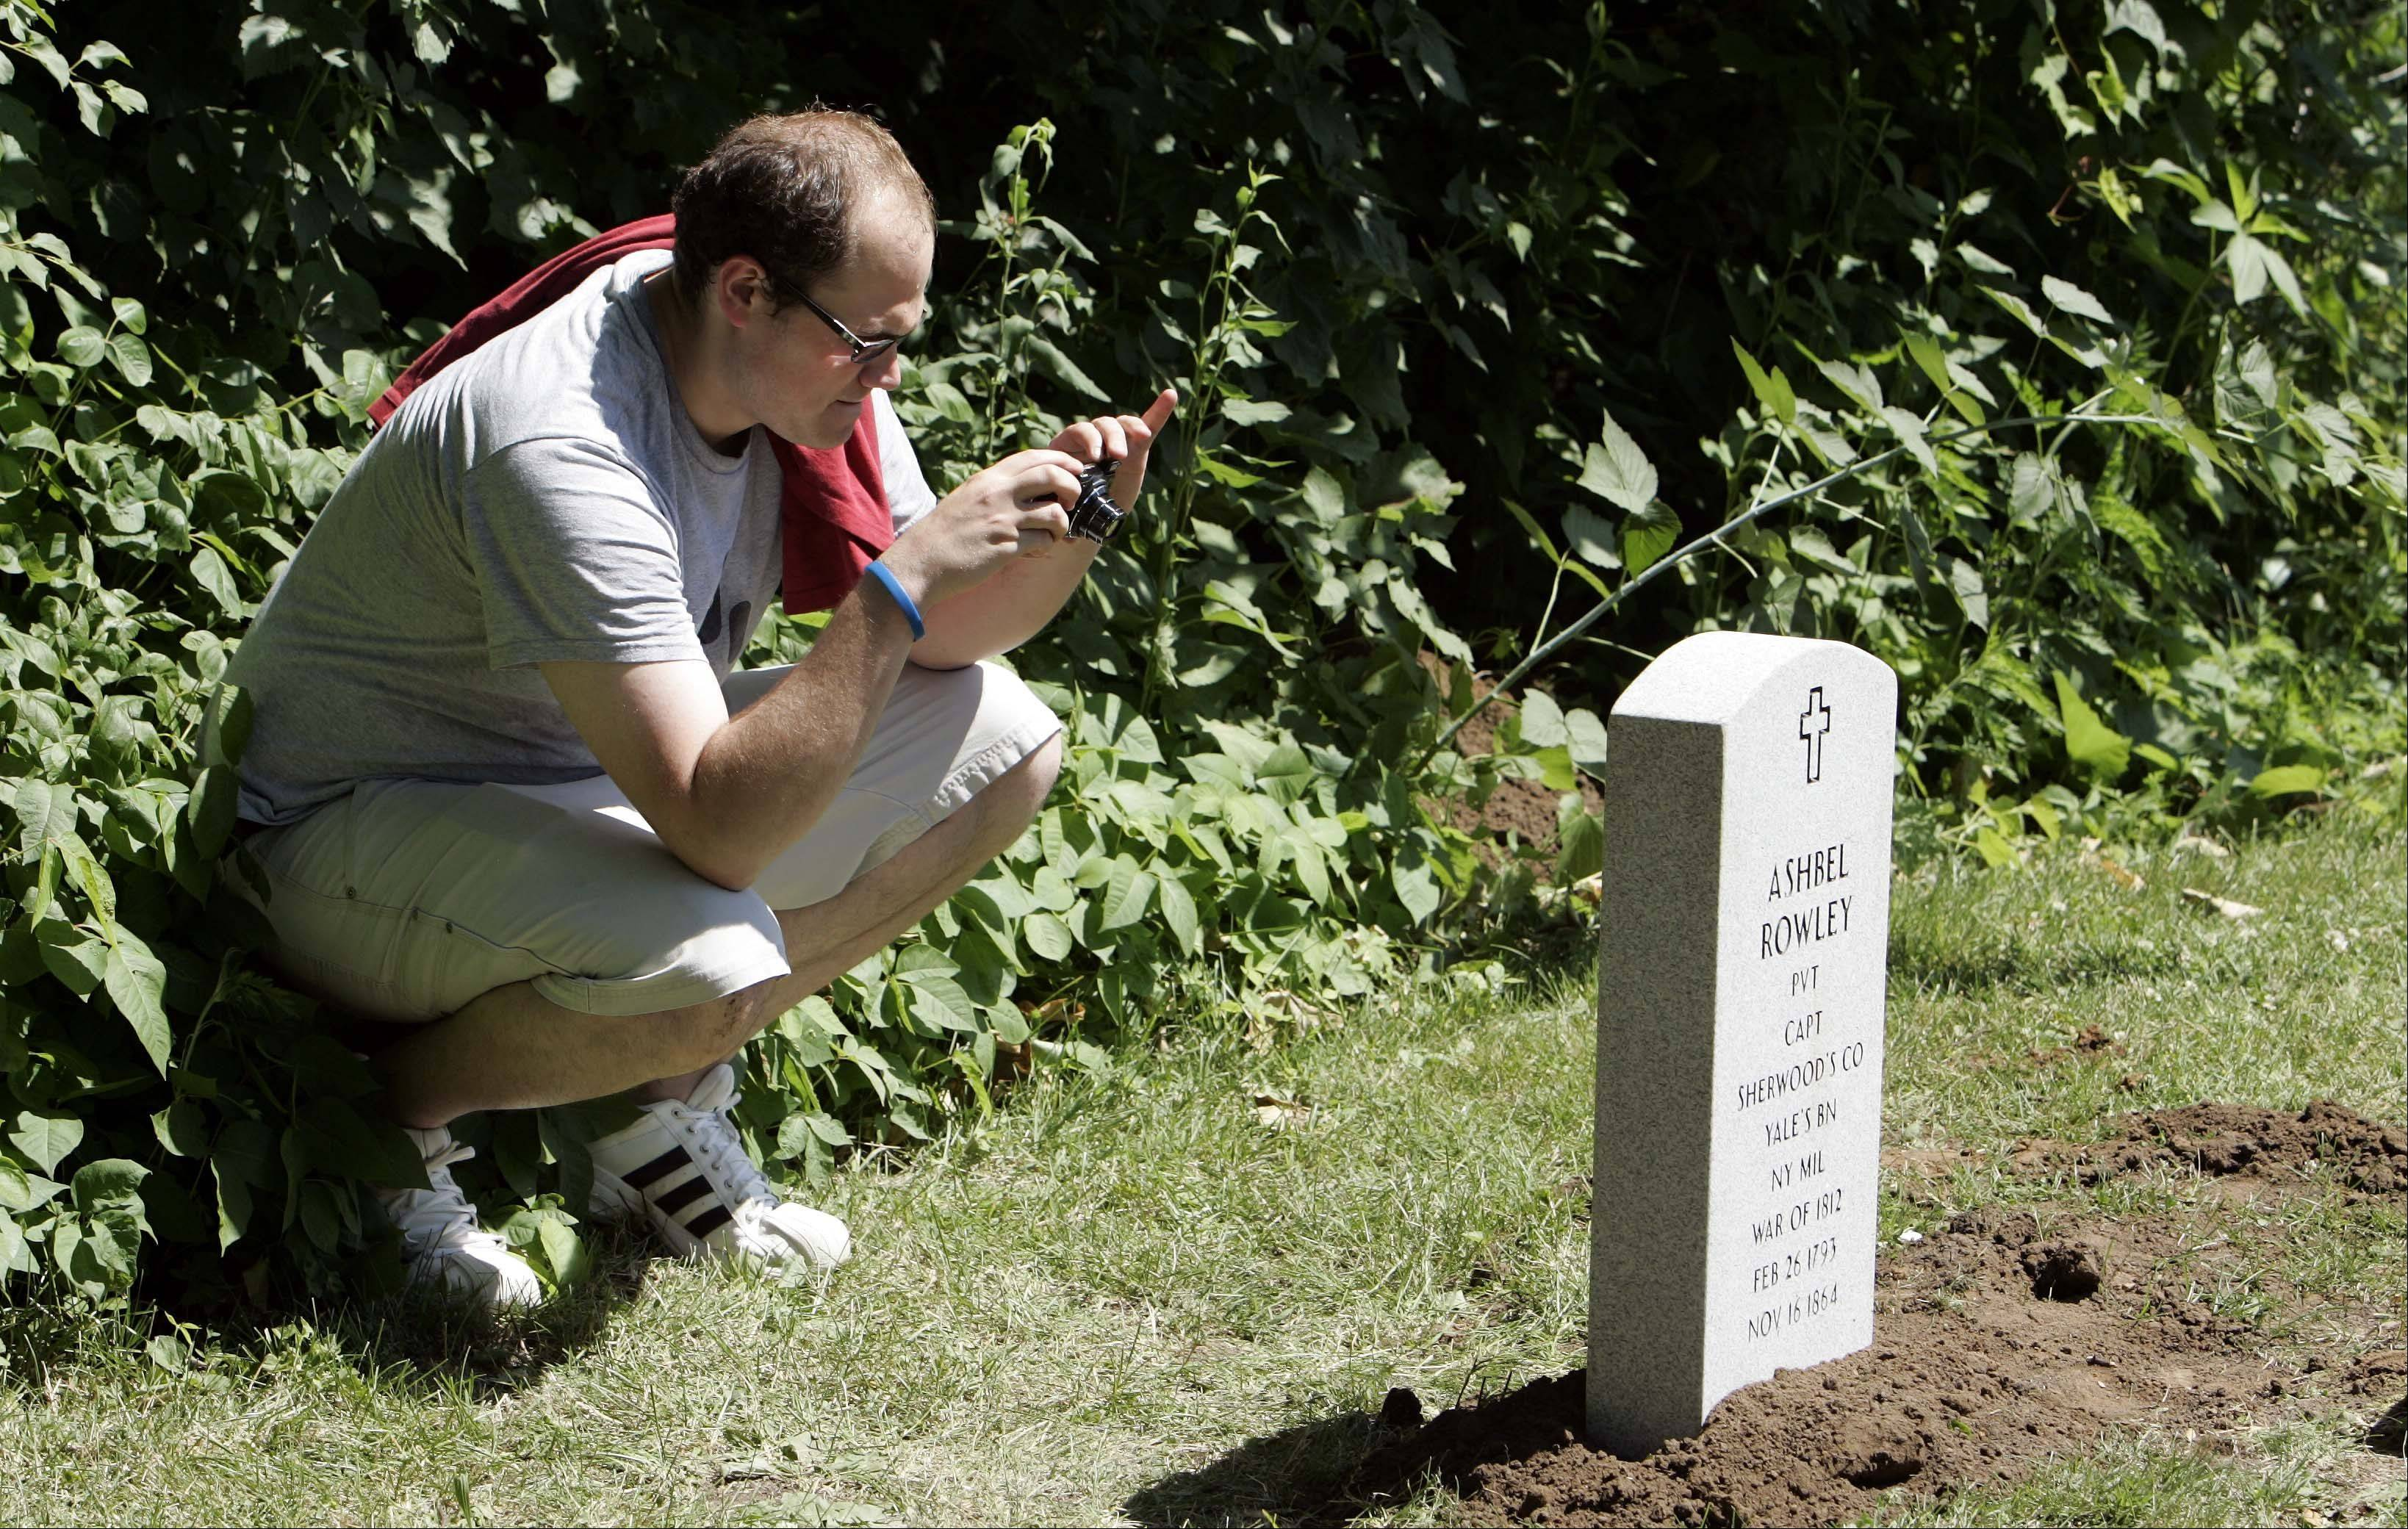 Tim Rowley came from Iowa Thursday to replace the gravestone of an ancestor at the Sugar Grove Cemetery.